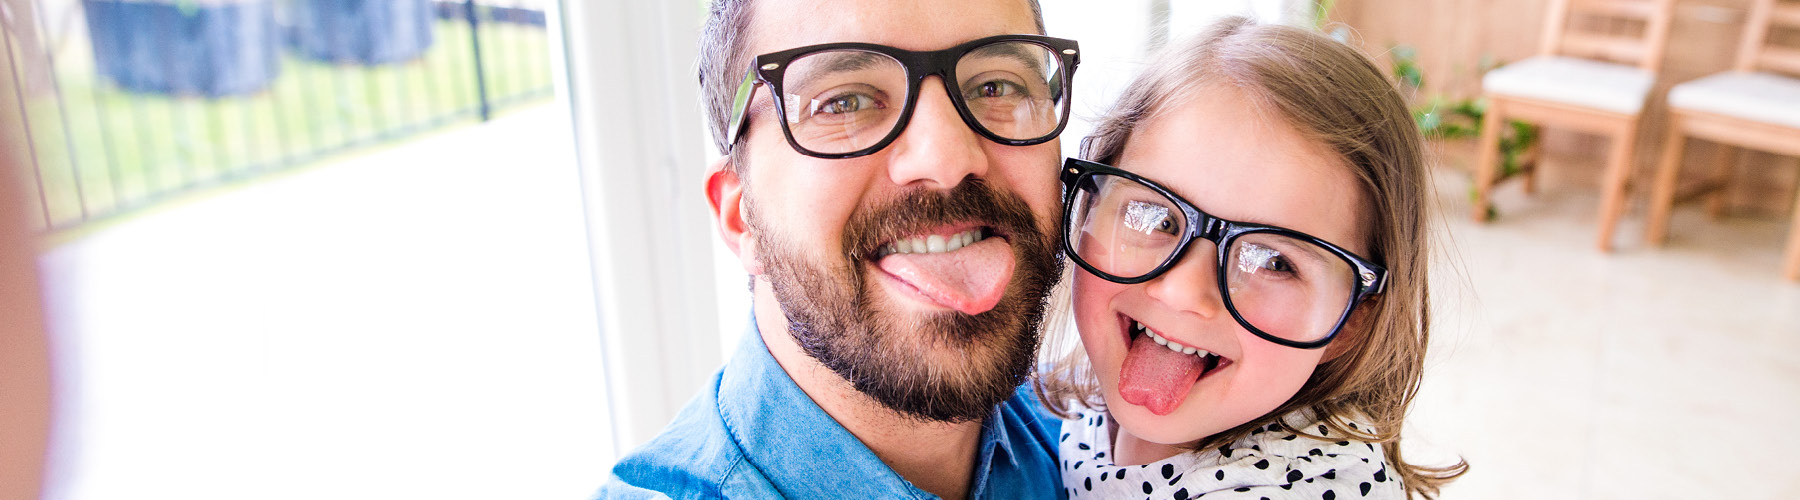 father and child wearing glasses